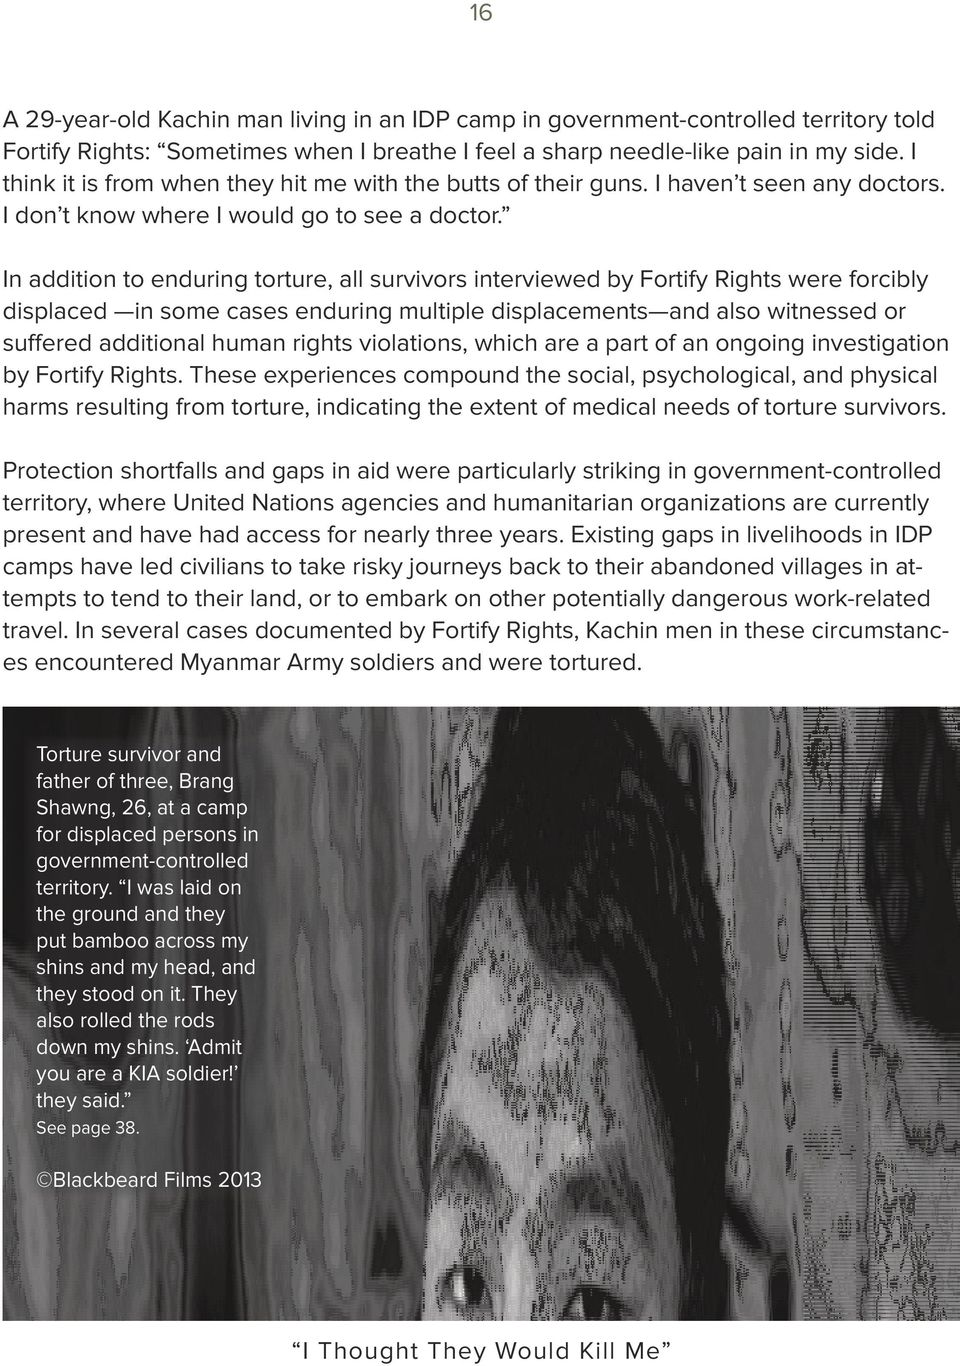 In addition to enduring torture, all survivors interviewed by Fortify Rights were forcibly displaced in some cases enduring multiple displacements and also witnessed or suffered additional human